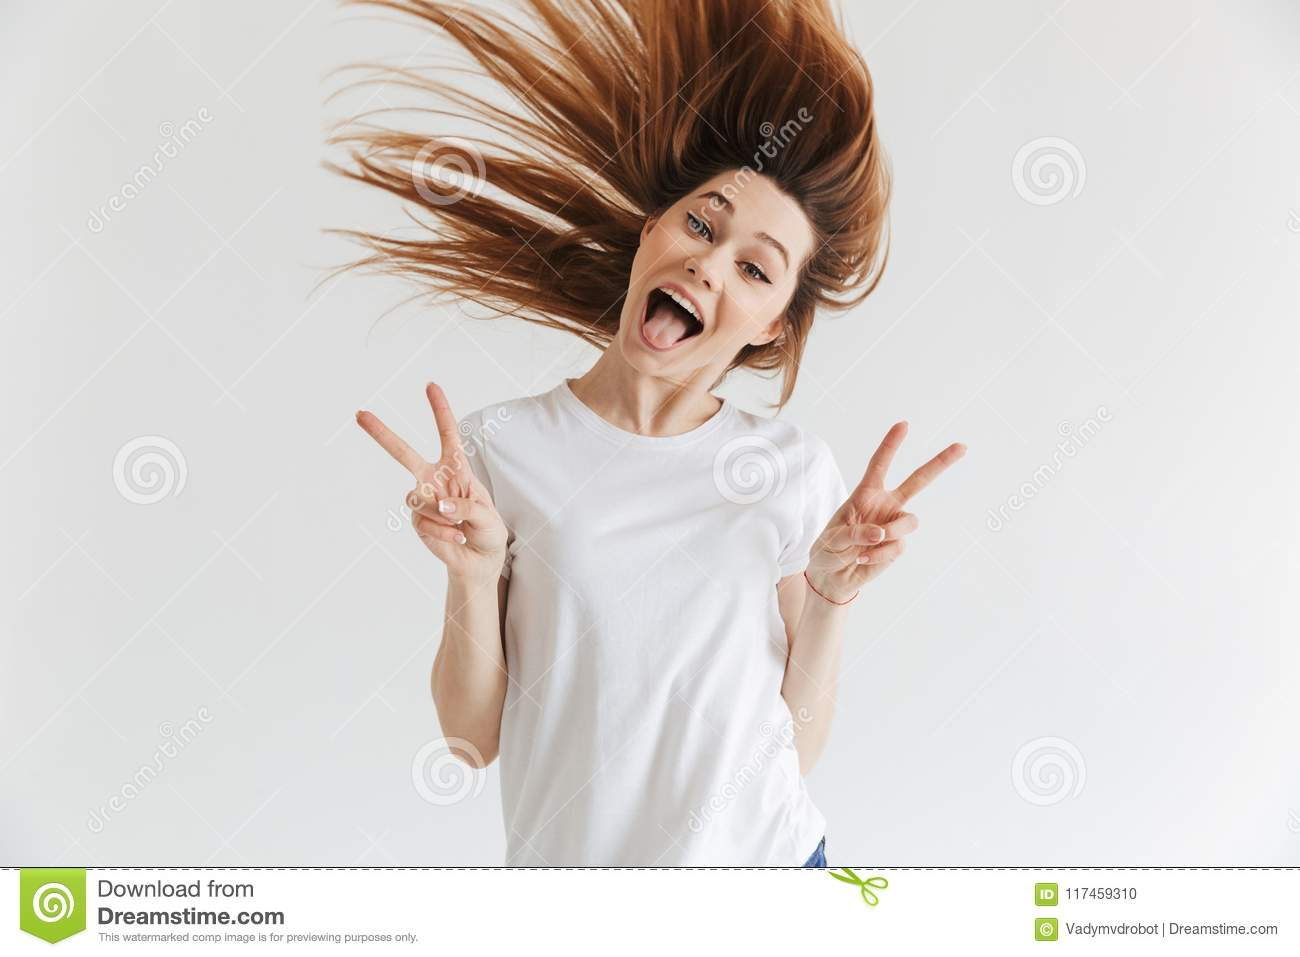 Happy screaming woman in t-shirt showing peace gestures